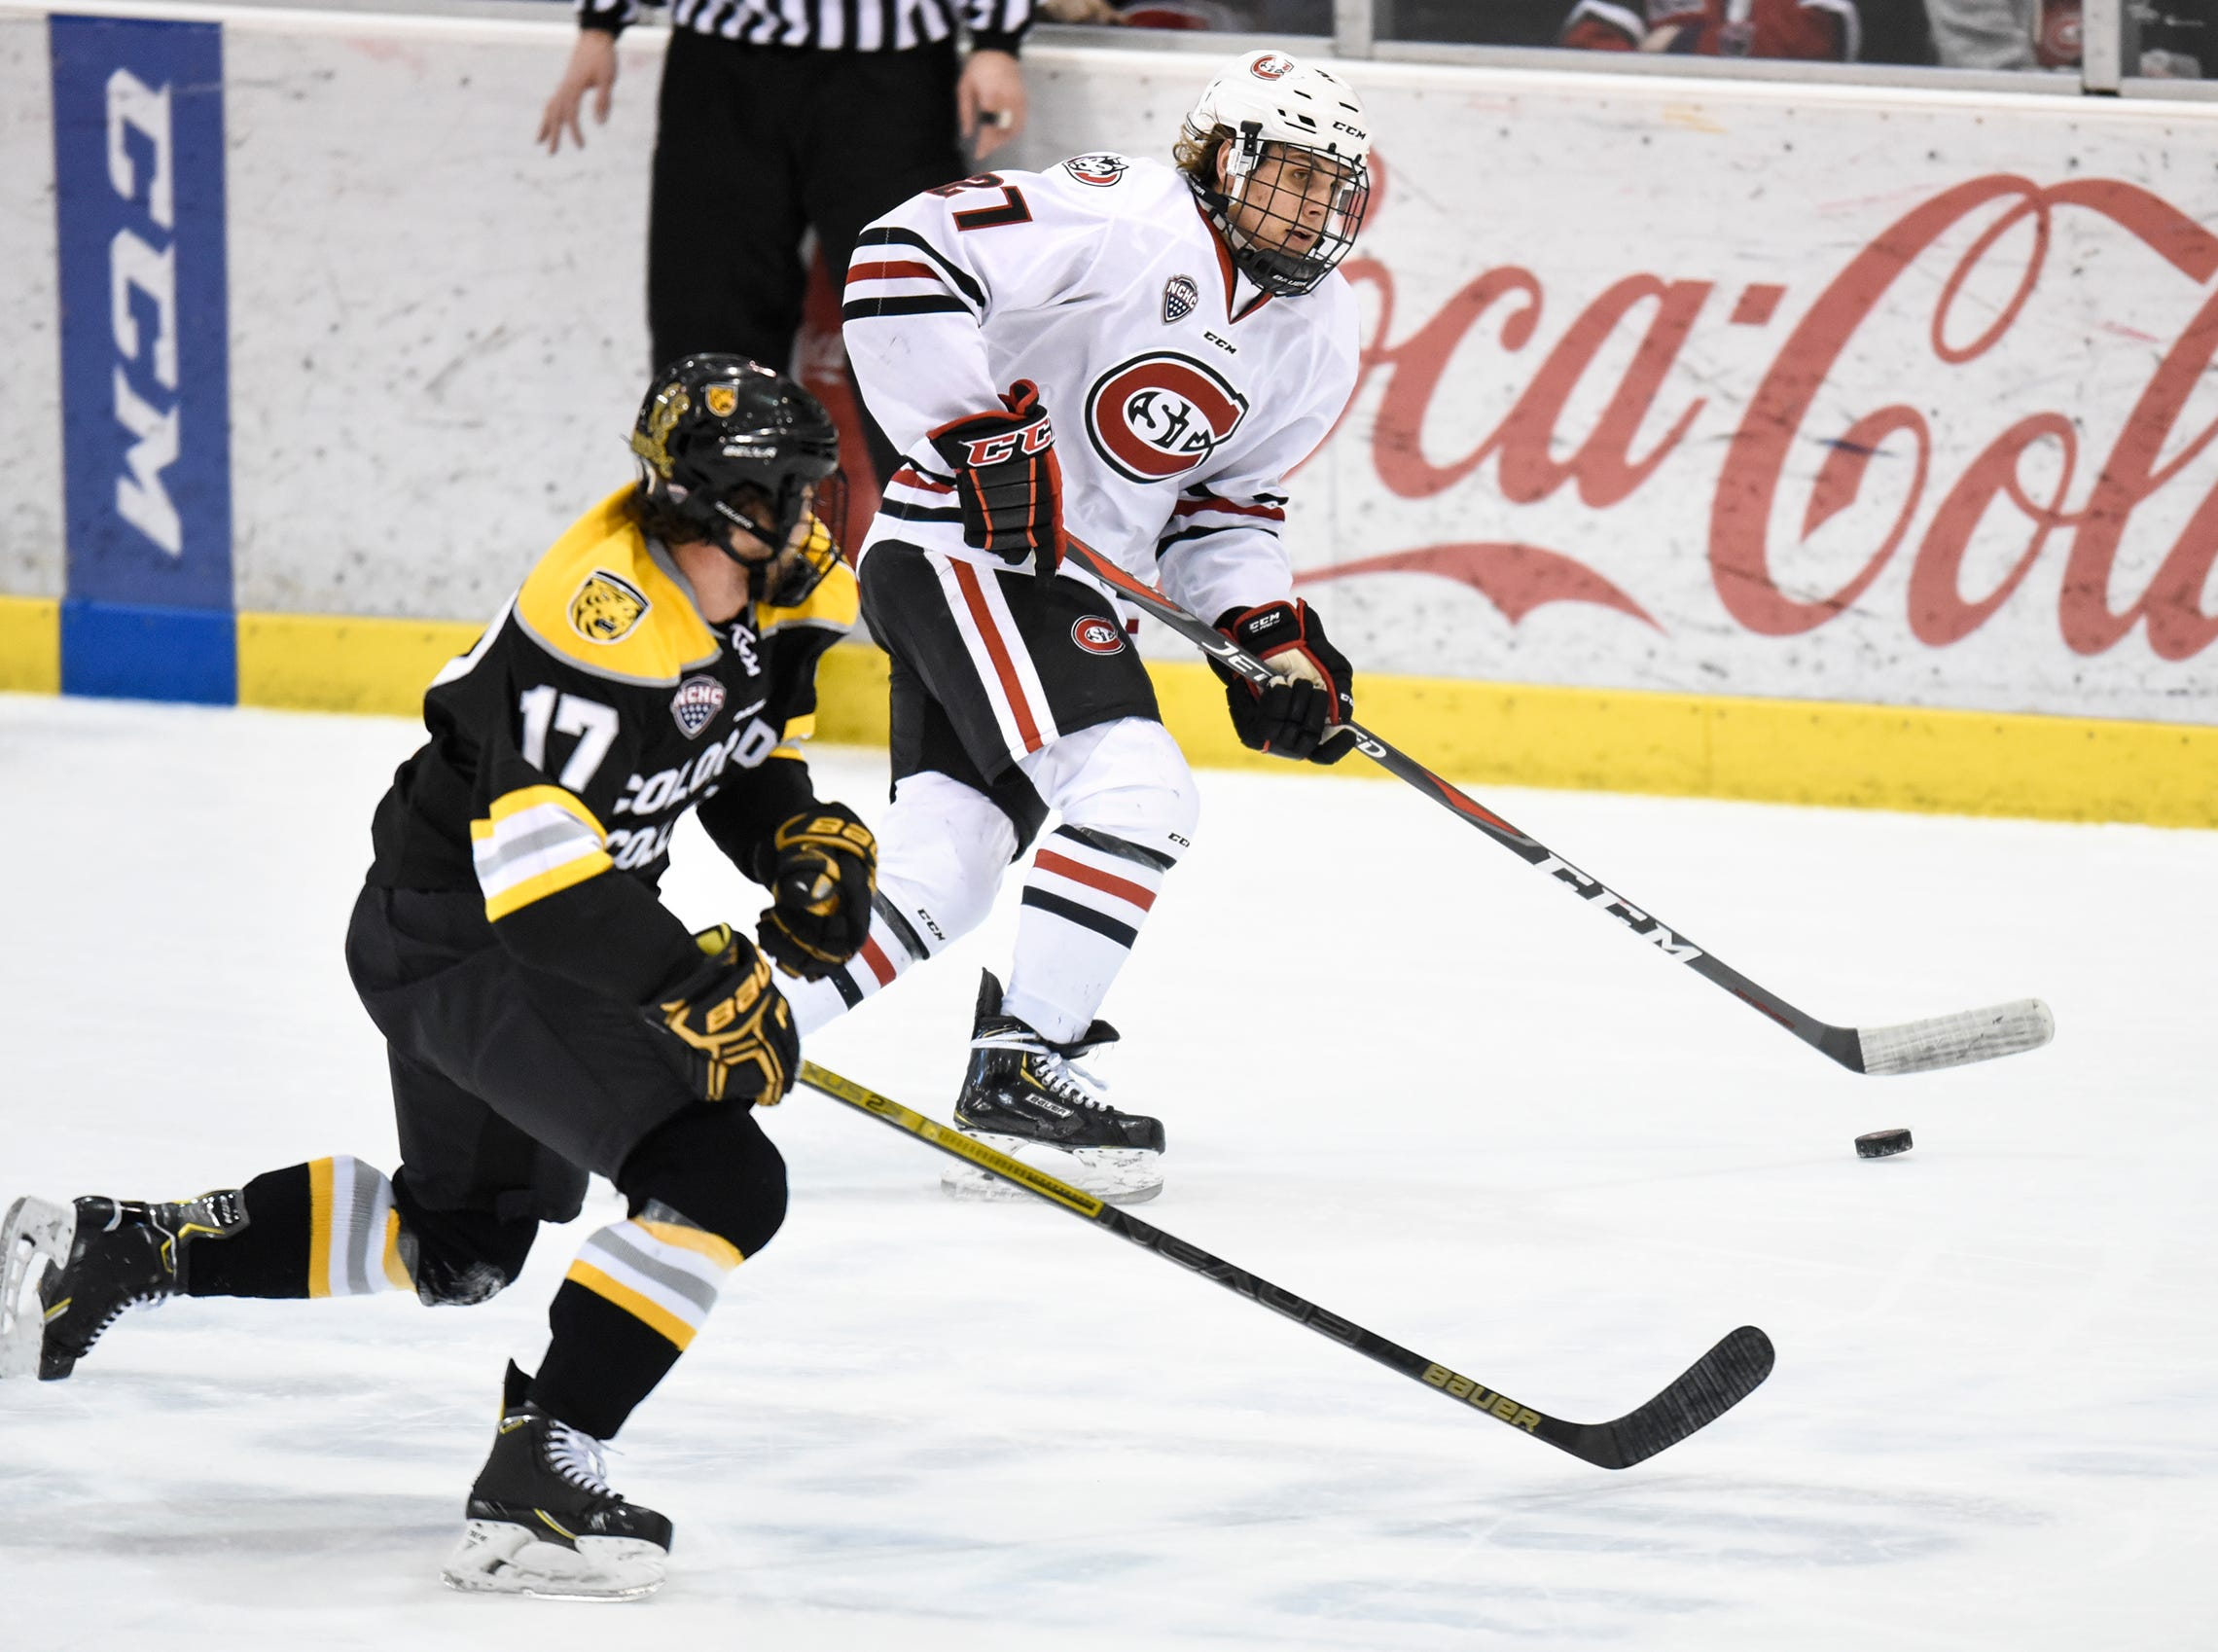 St. Cloud State's Blake Lizotte moves with the puck during the first period of the Friday, Feb. 8, game at the Herb Brooks National Hockey Center in St. Cloud.